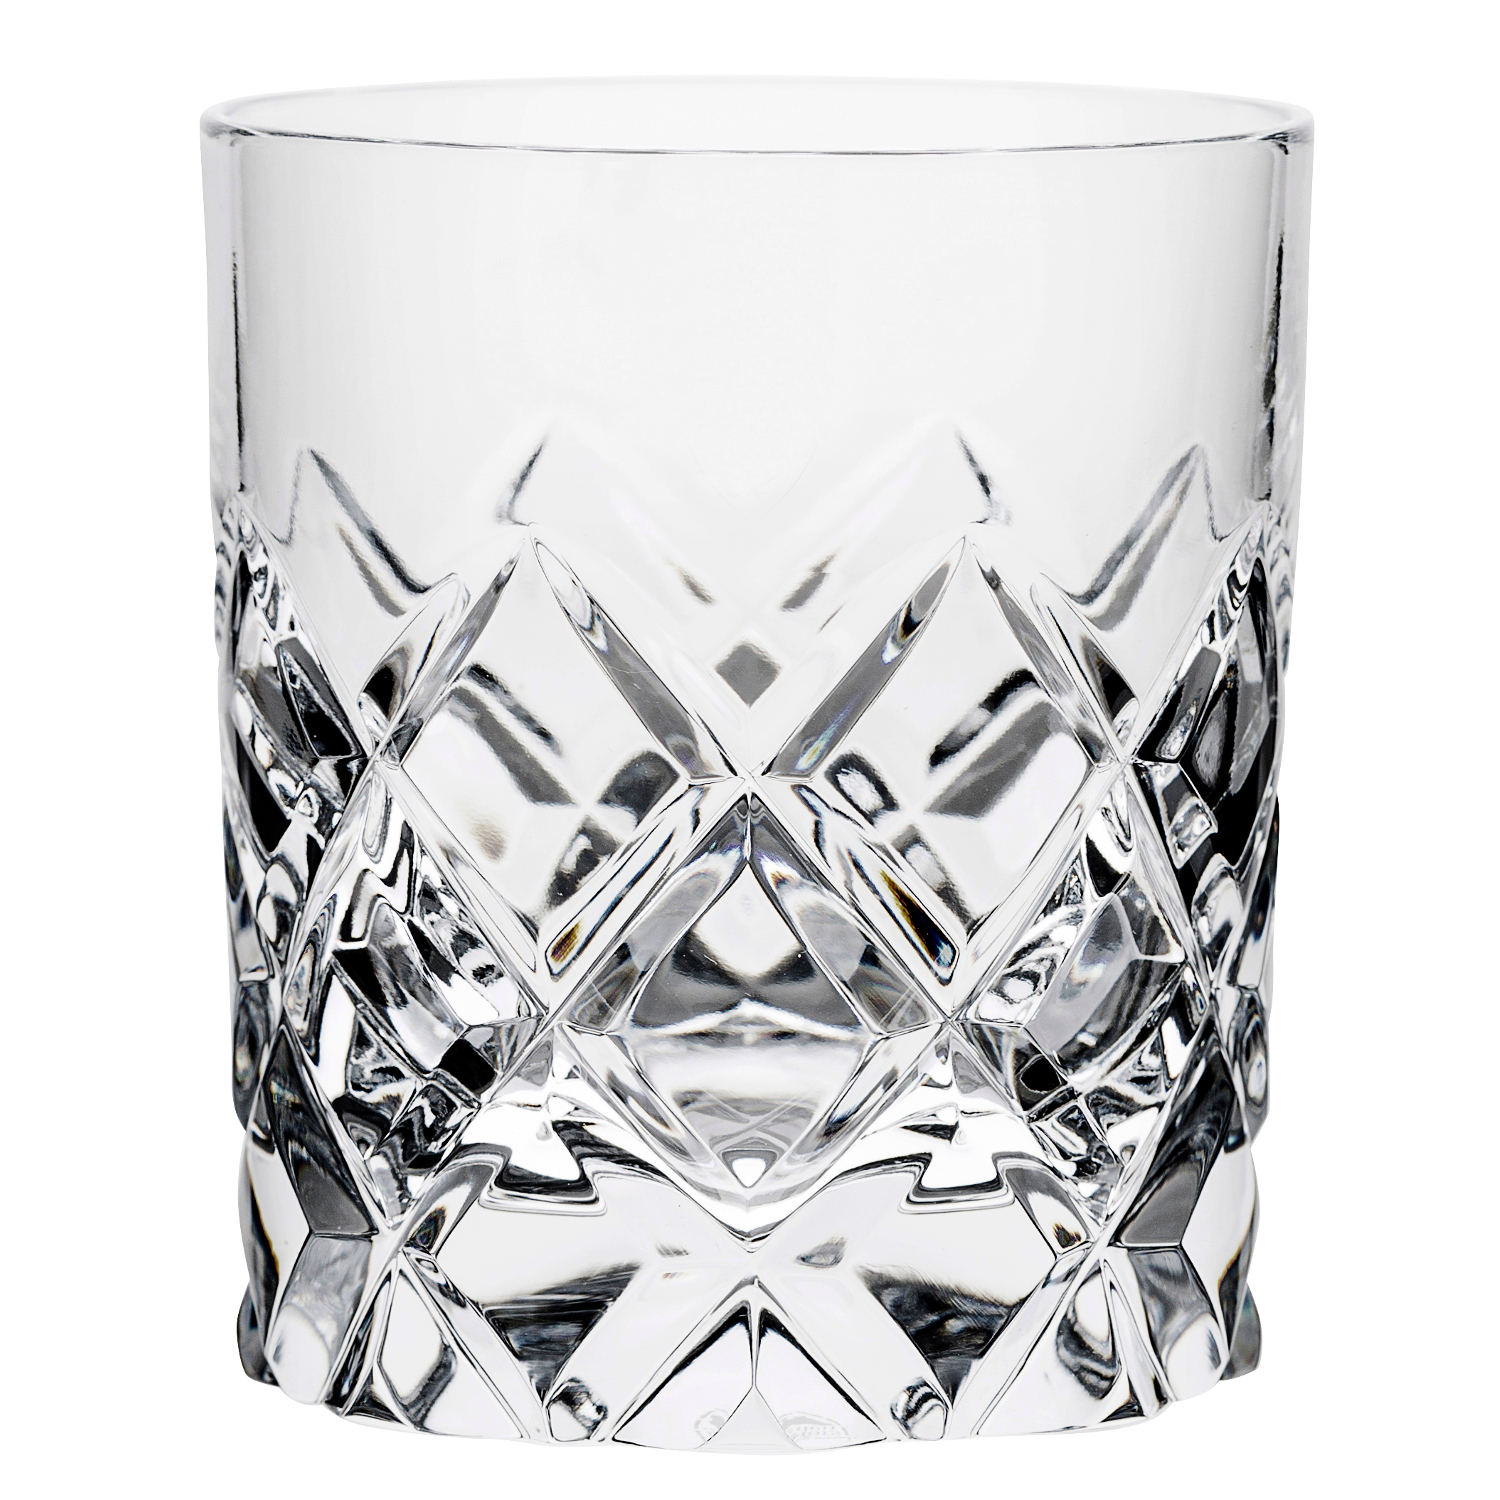 Orrefors Sofiero Crystal 8 Ounce Old Fashioned Glass, Set of 2